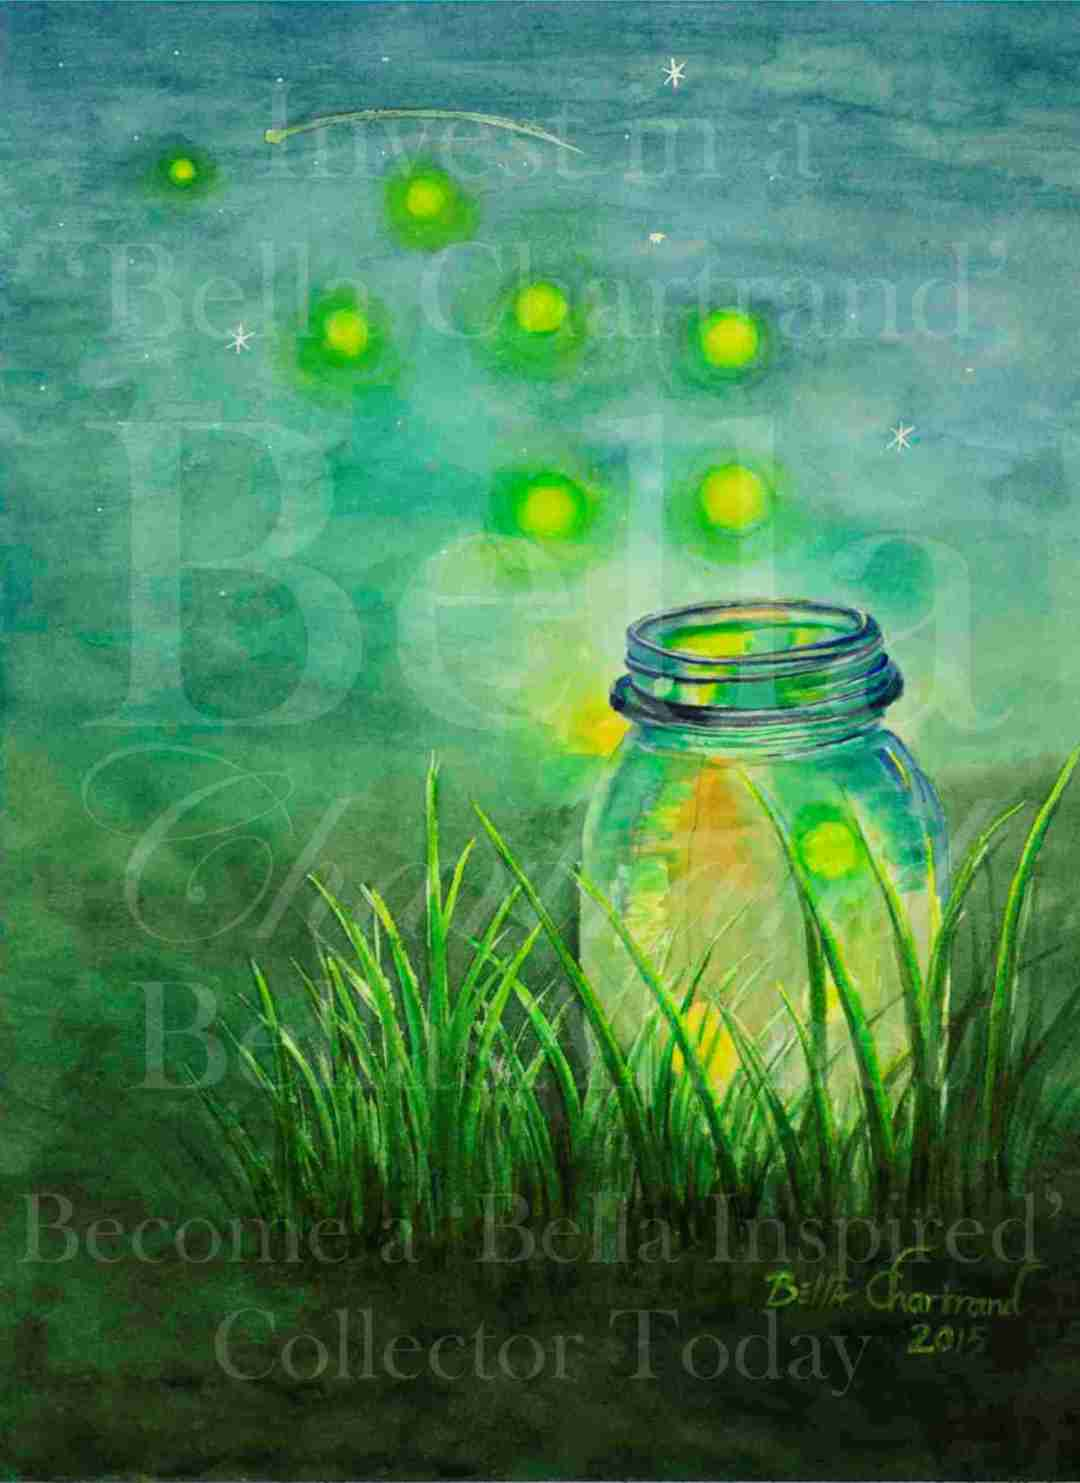 Fireflies from Bella Inspired Whimsical Collection by Bella Chartrand from Utopia USA